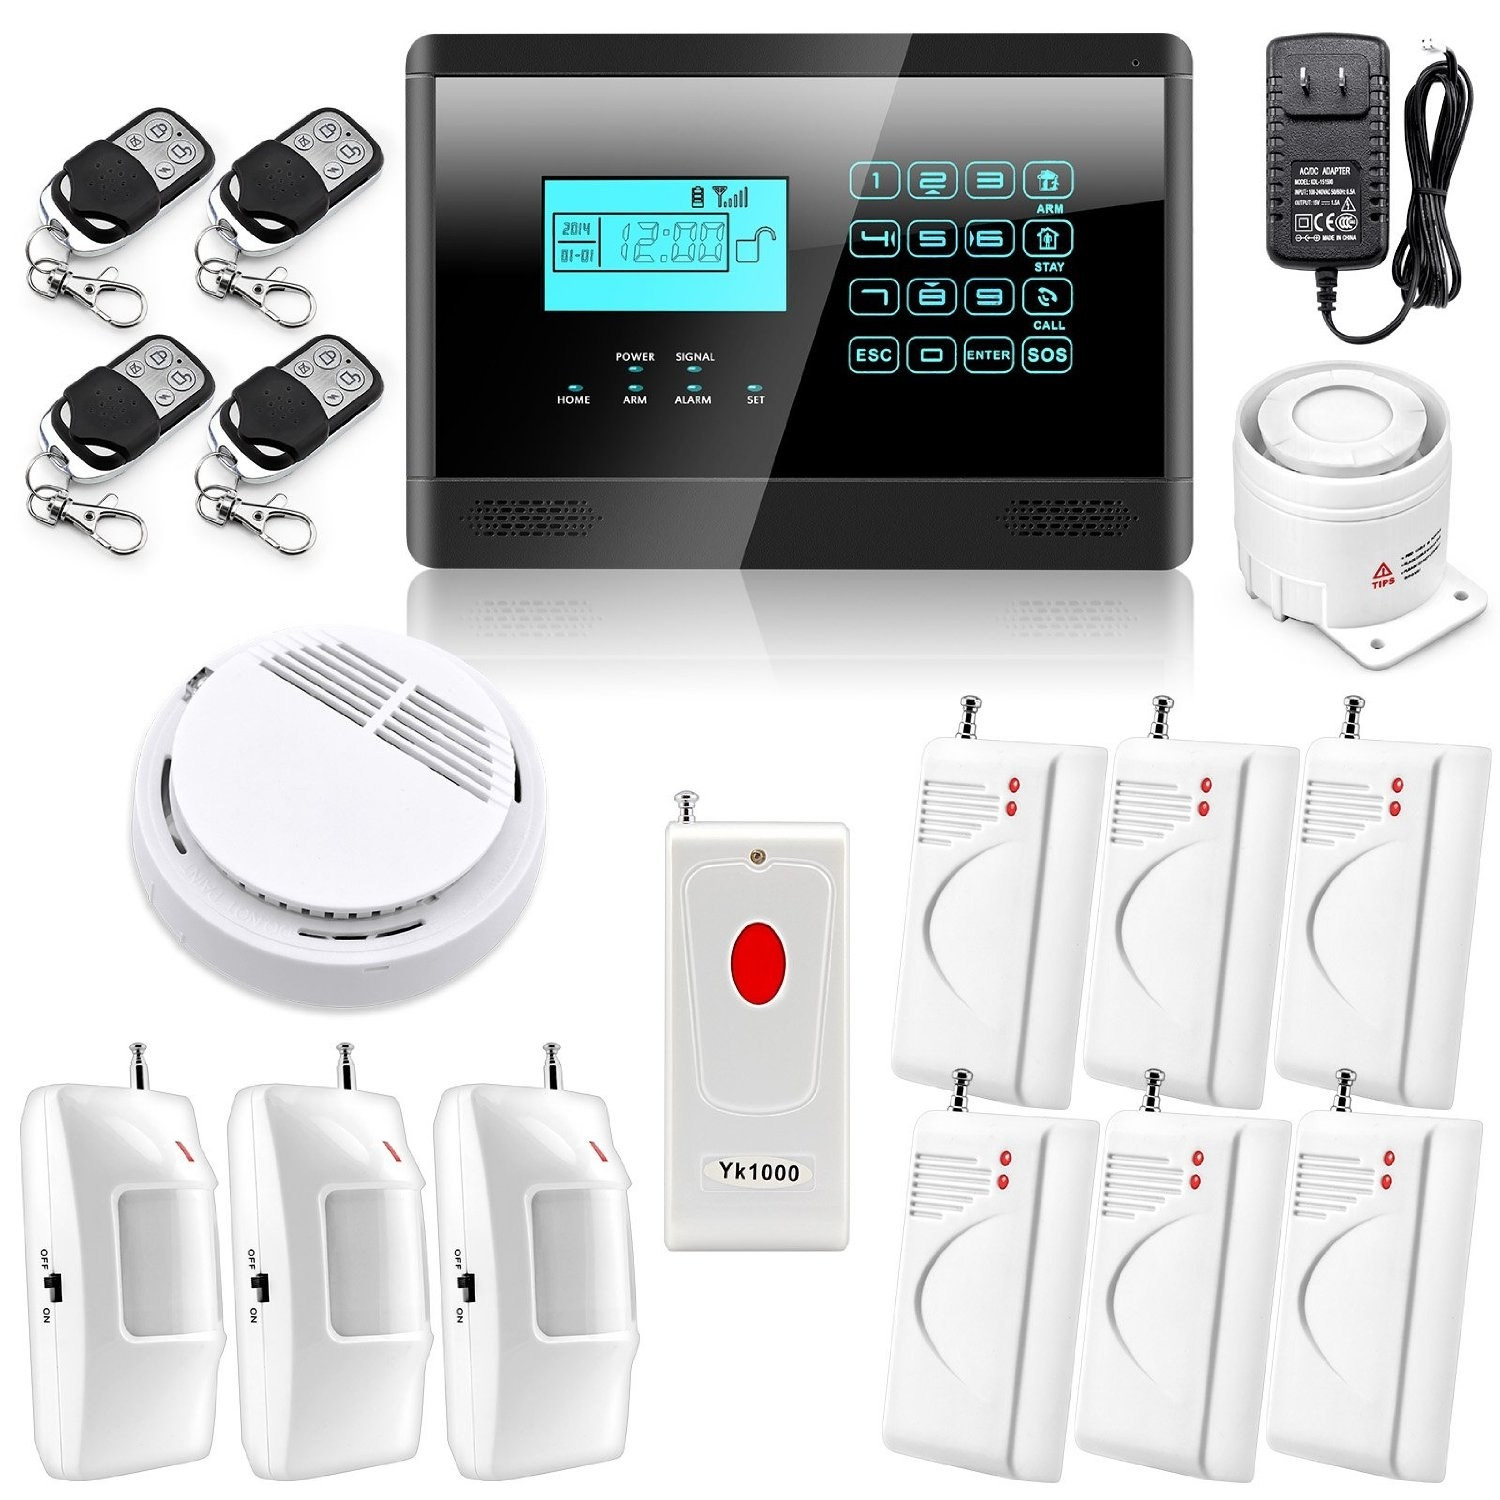 DIY Home Security System  Diy Home Security Alarm Systems